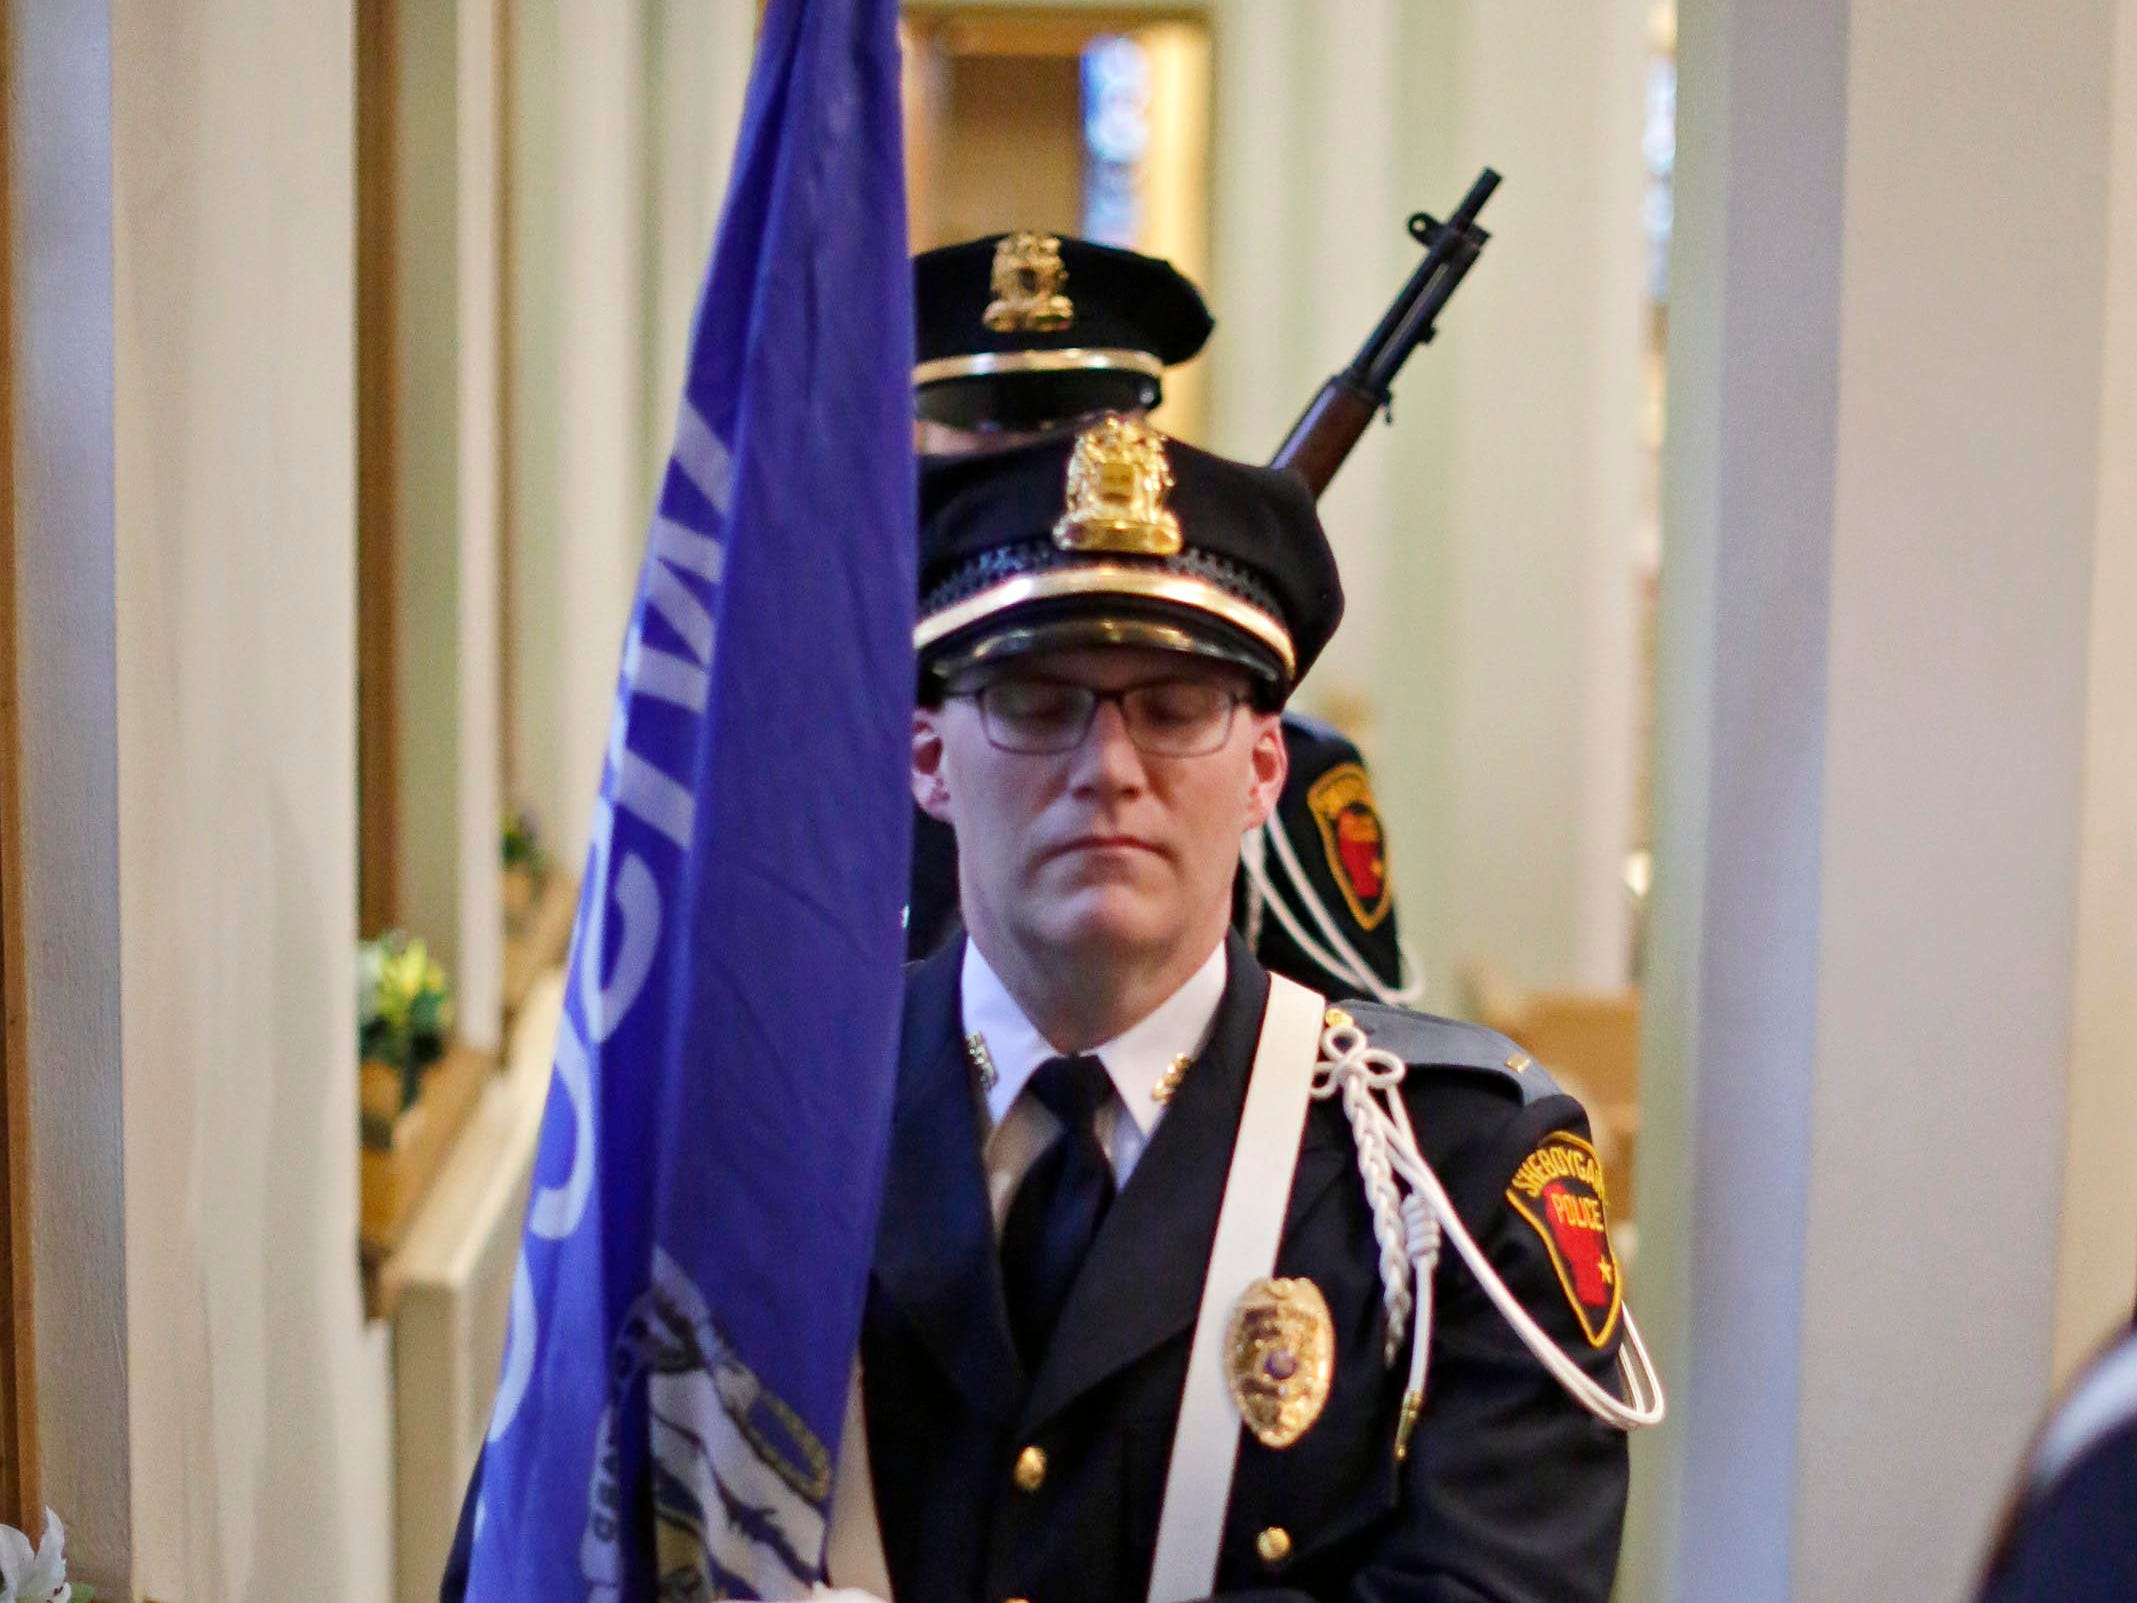 Lt. Kurt Zempel of the Sheboygan Police Department Color Guards carries a flag at the start of the National Day of Prayer, Thursday, May 2, 2019, at Fountain Park Church, in Sheboygan, Wis.